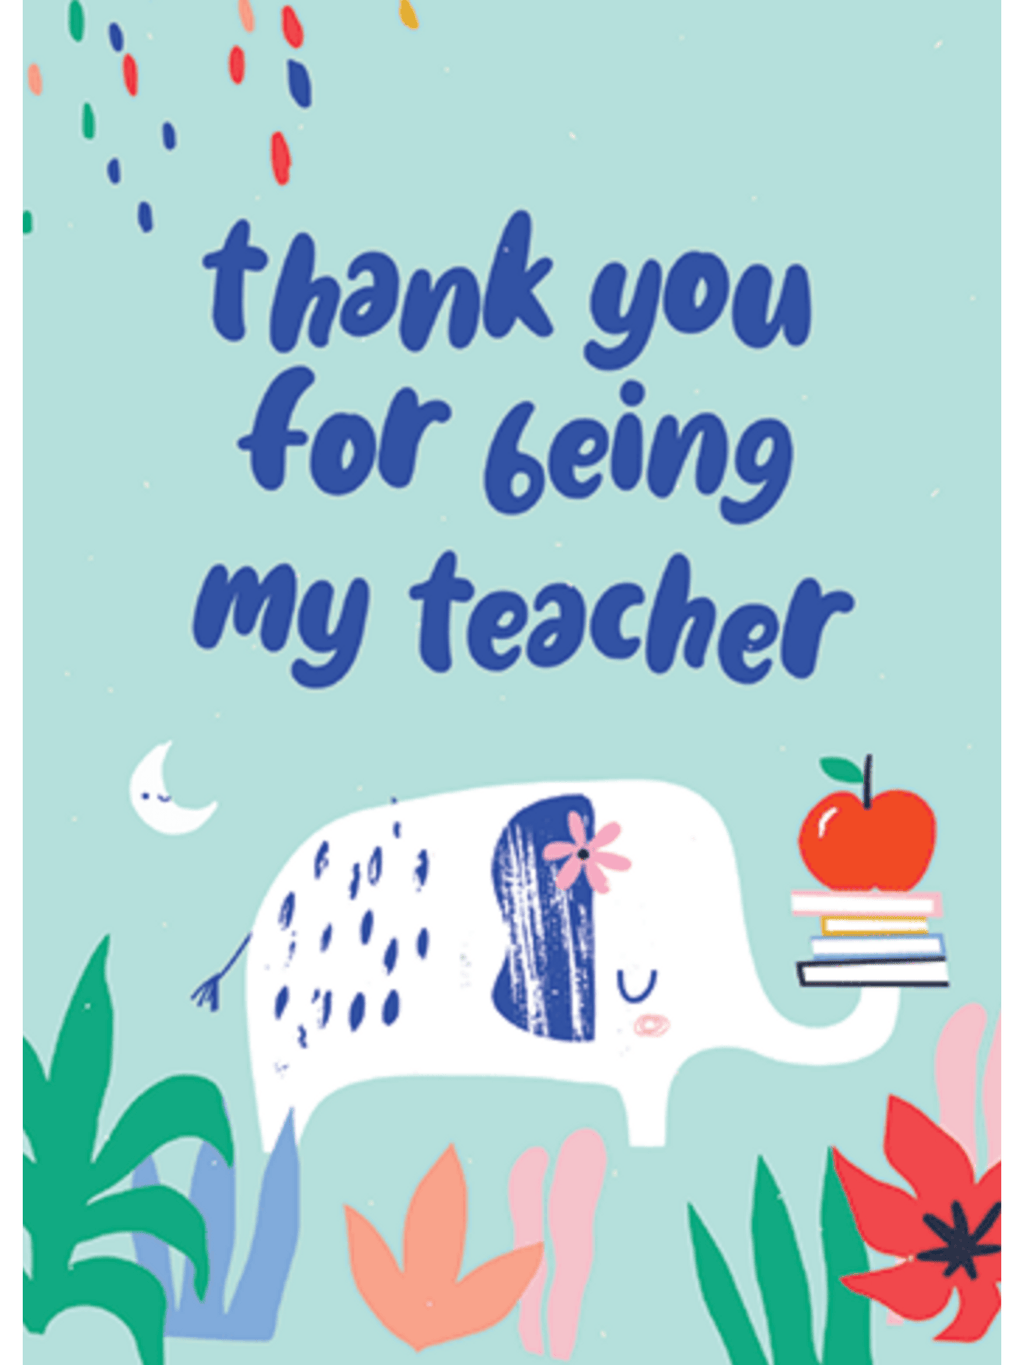 Thank You For Being My Teacher - Card